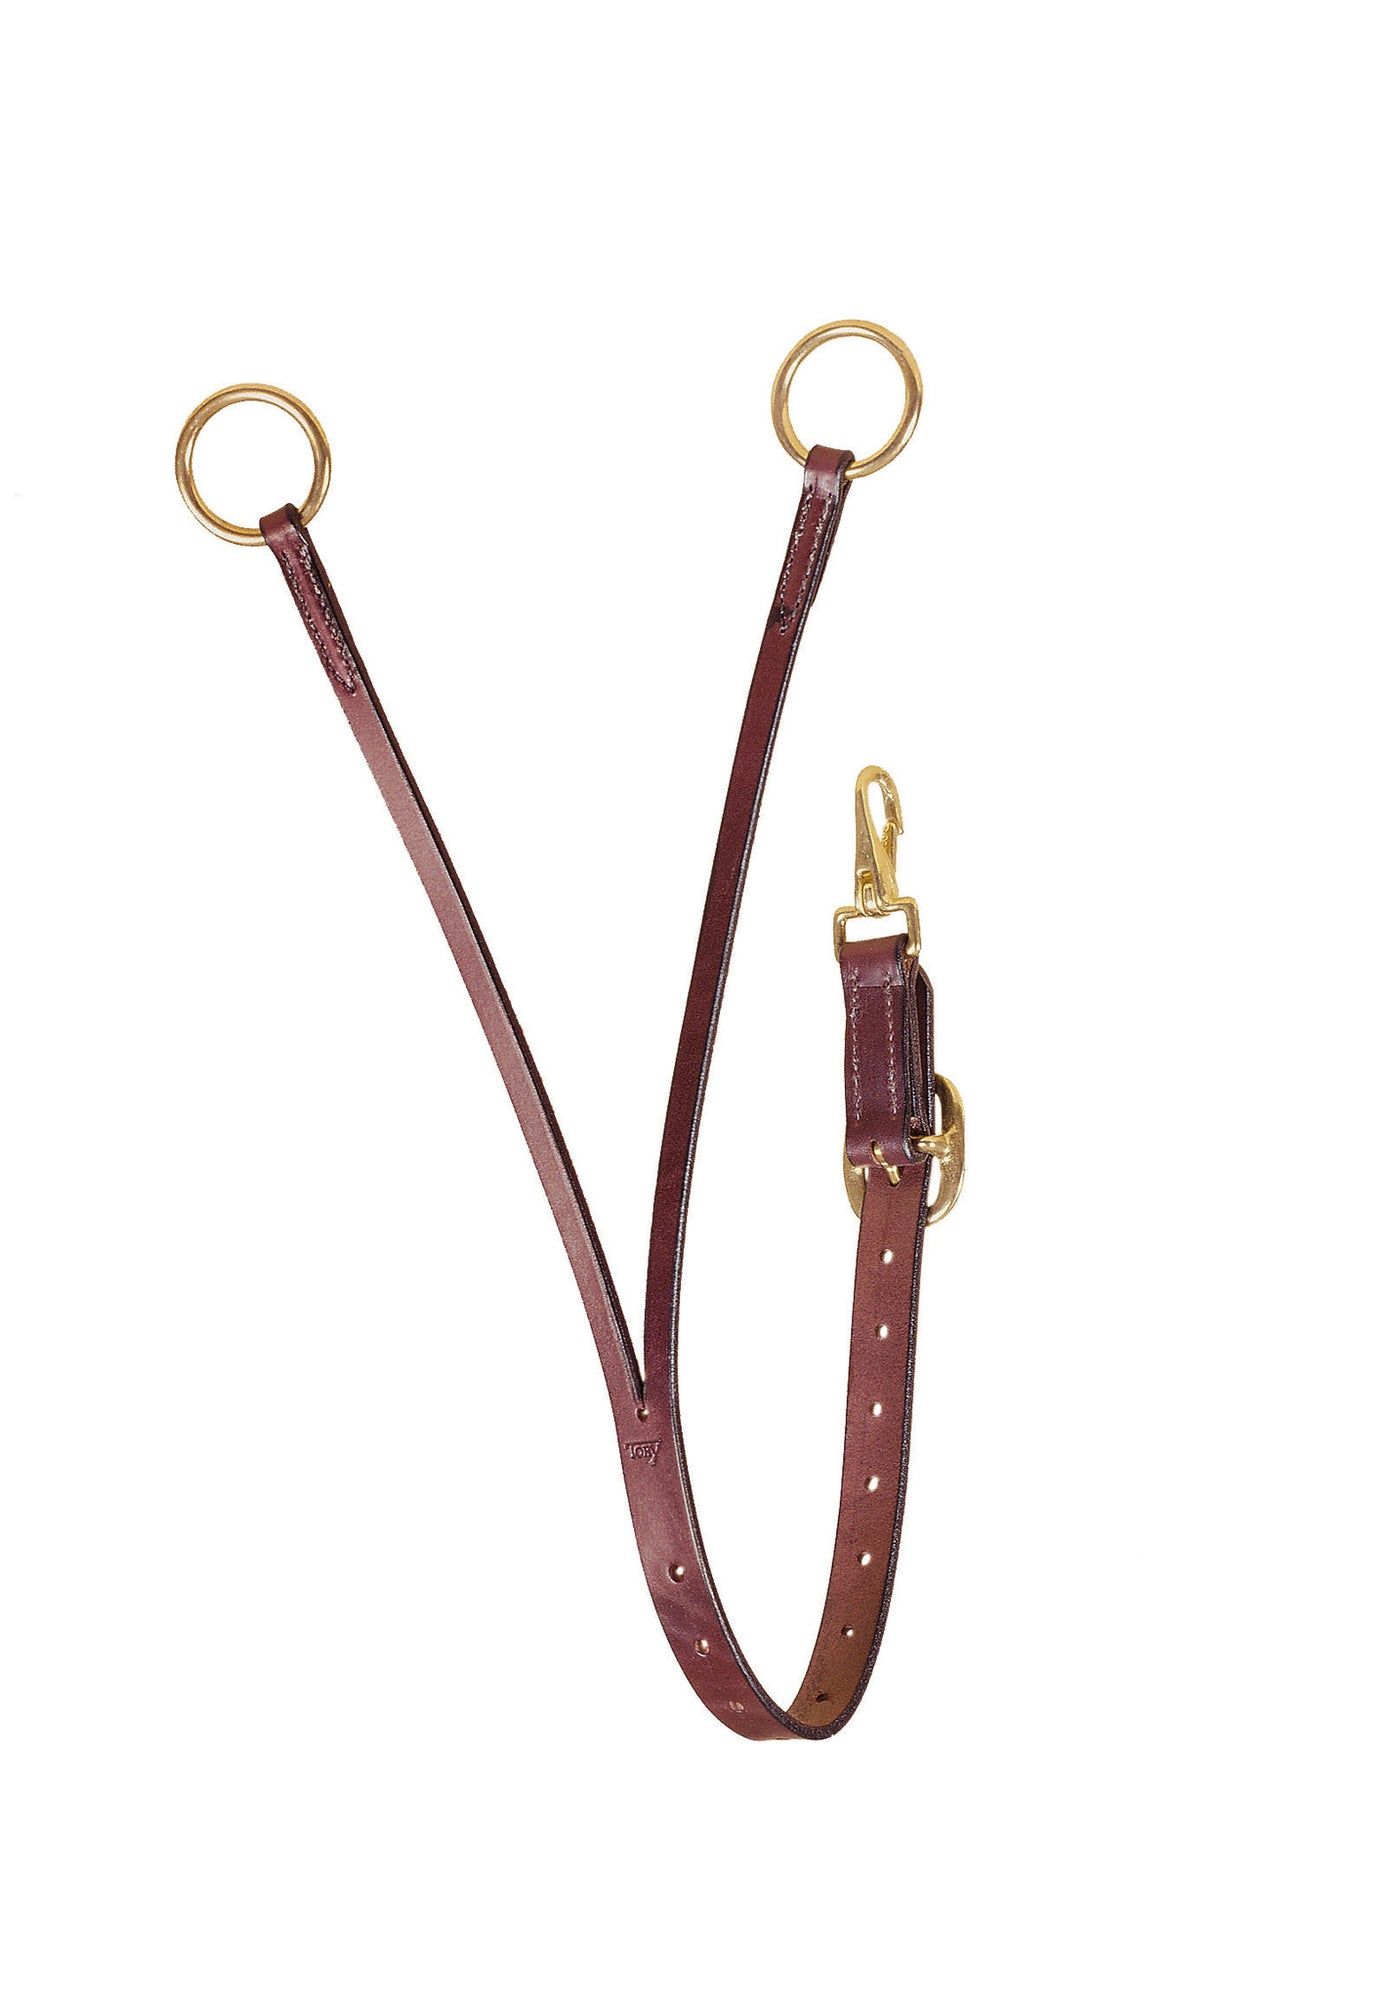 Tory Leather Bridle Leather Training Fork with Solid Brass Hardware